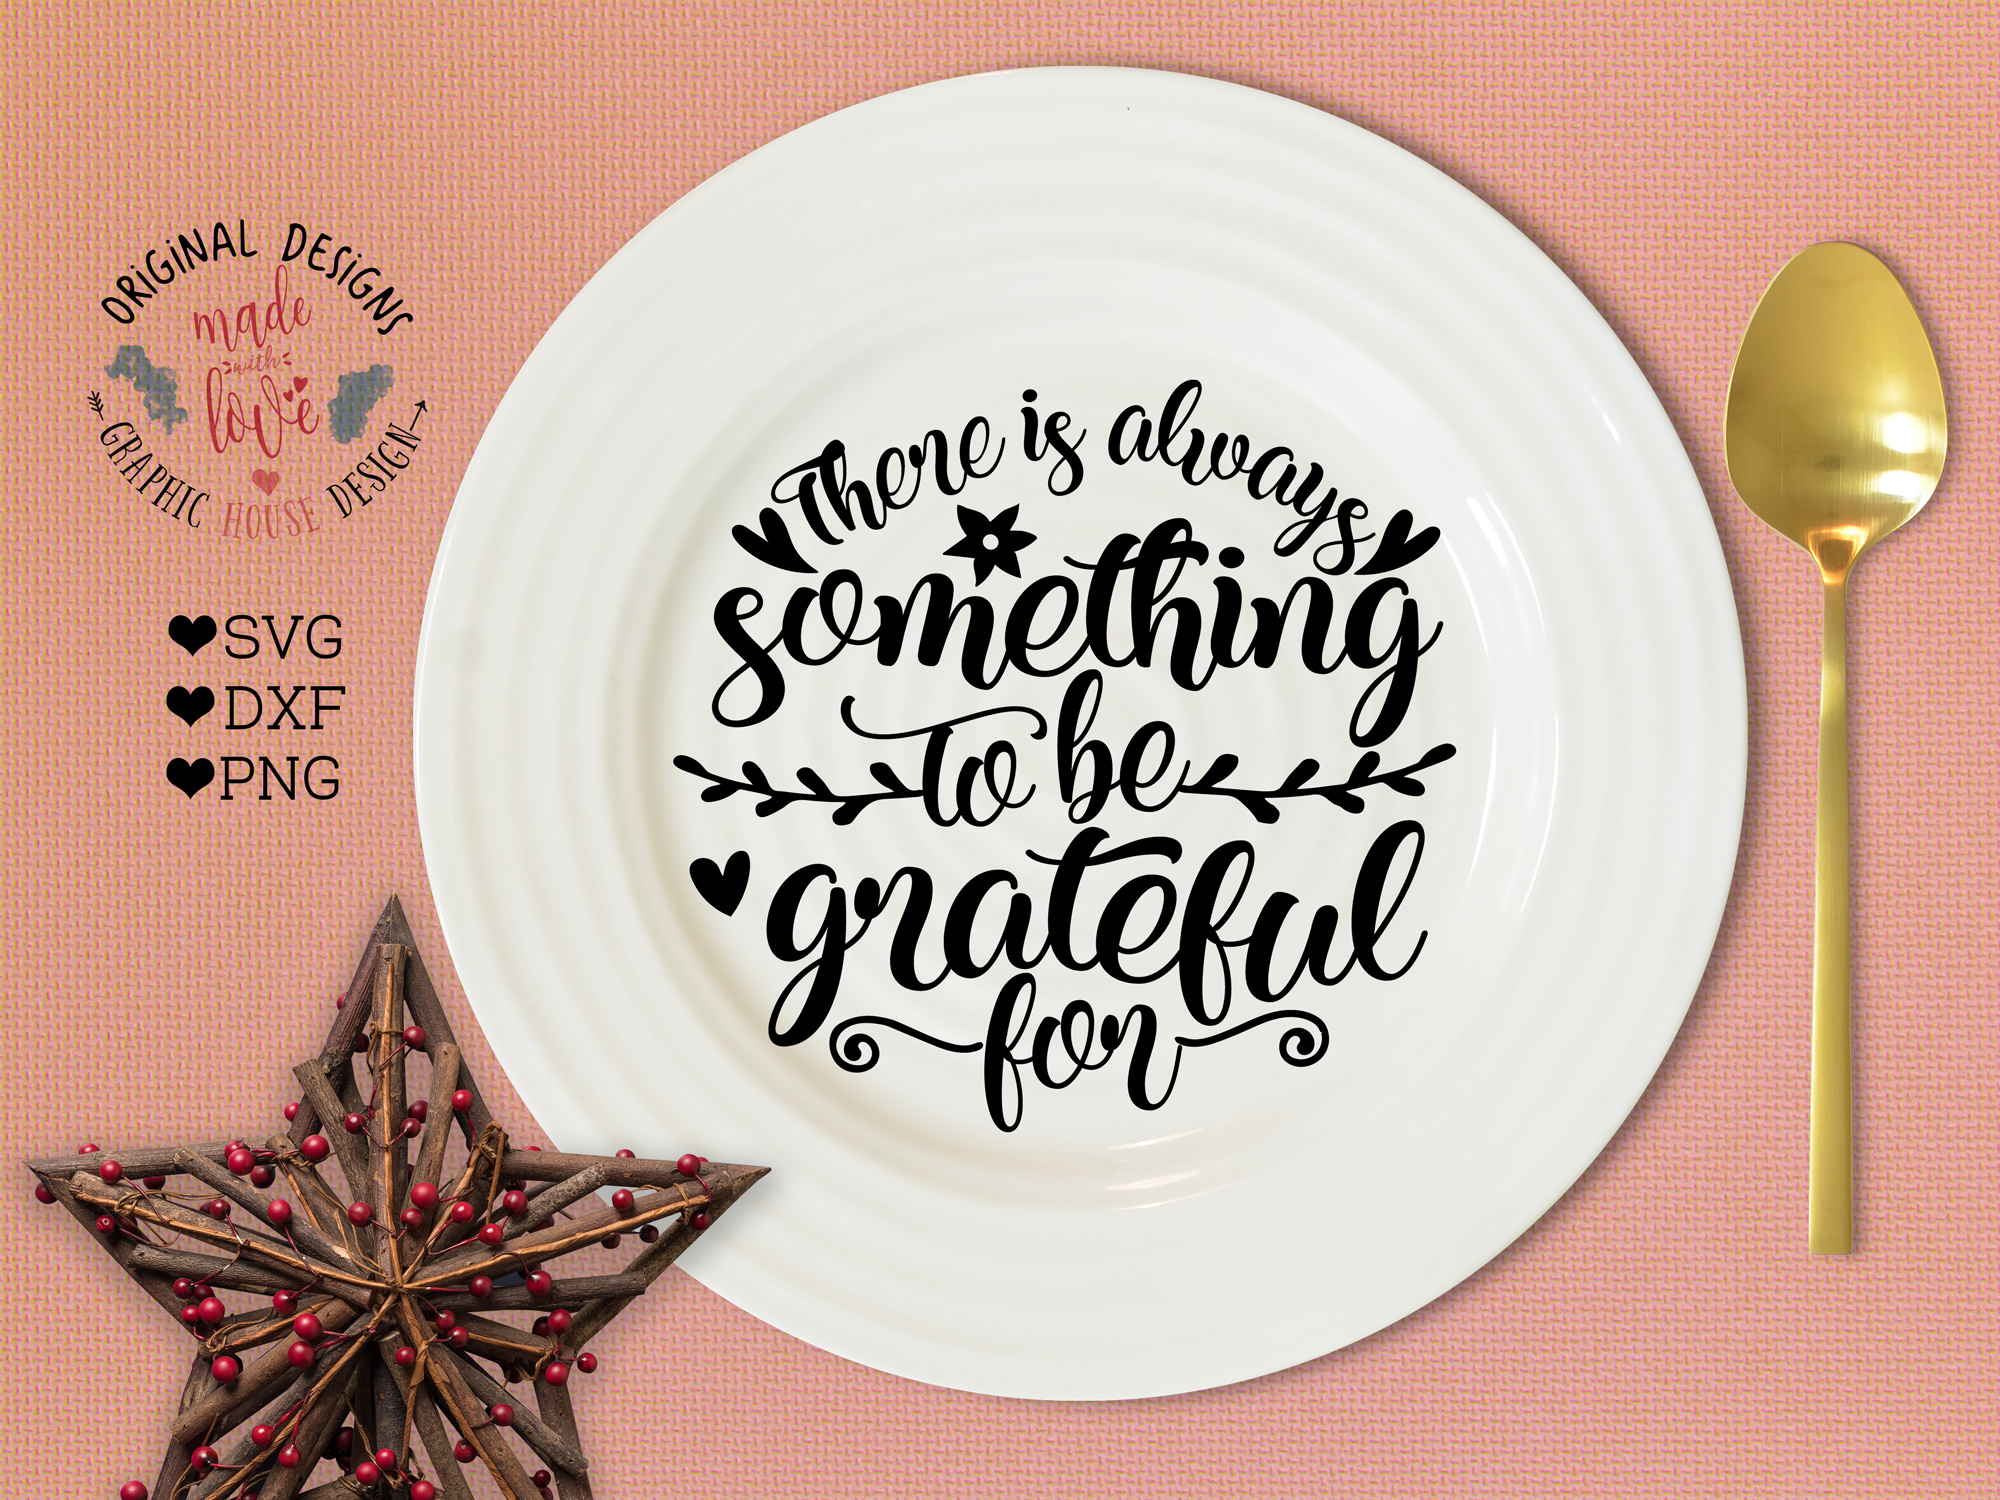 Thanksgiving svg, There is always something to be grateful for in SVG DXF PNG example image 1